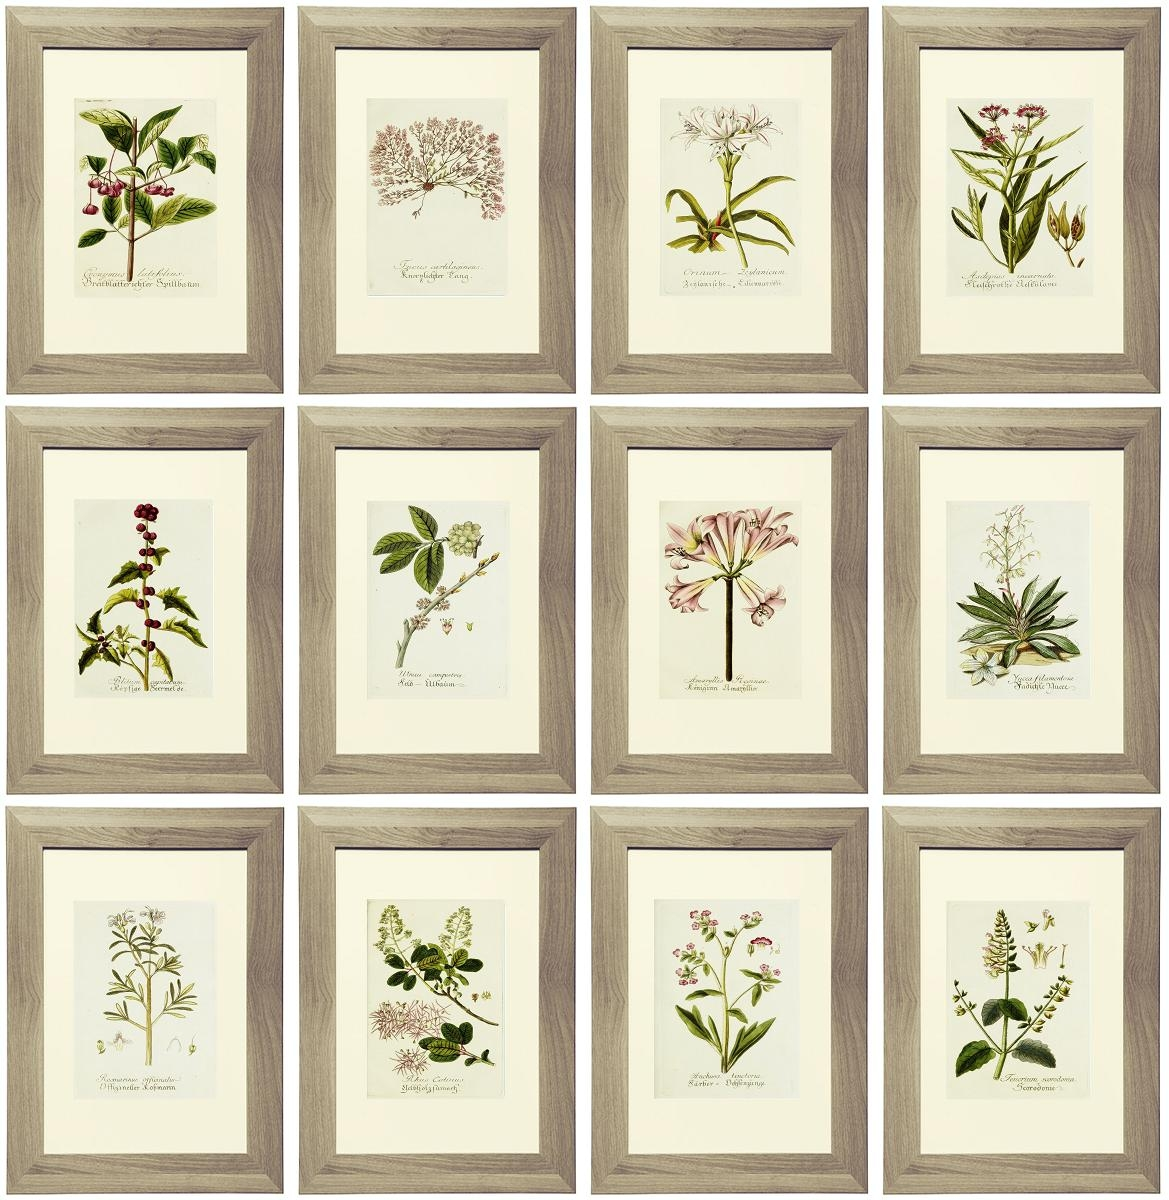 Botanical Wall Art Ideal Metal Wall Art For Abstract Wall Art With Regard To Botanical Metal Wall Art (Image 6 of 20)